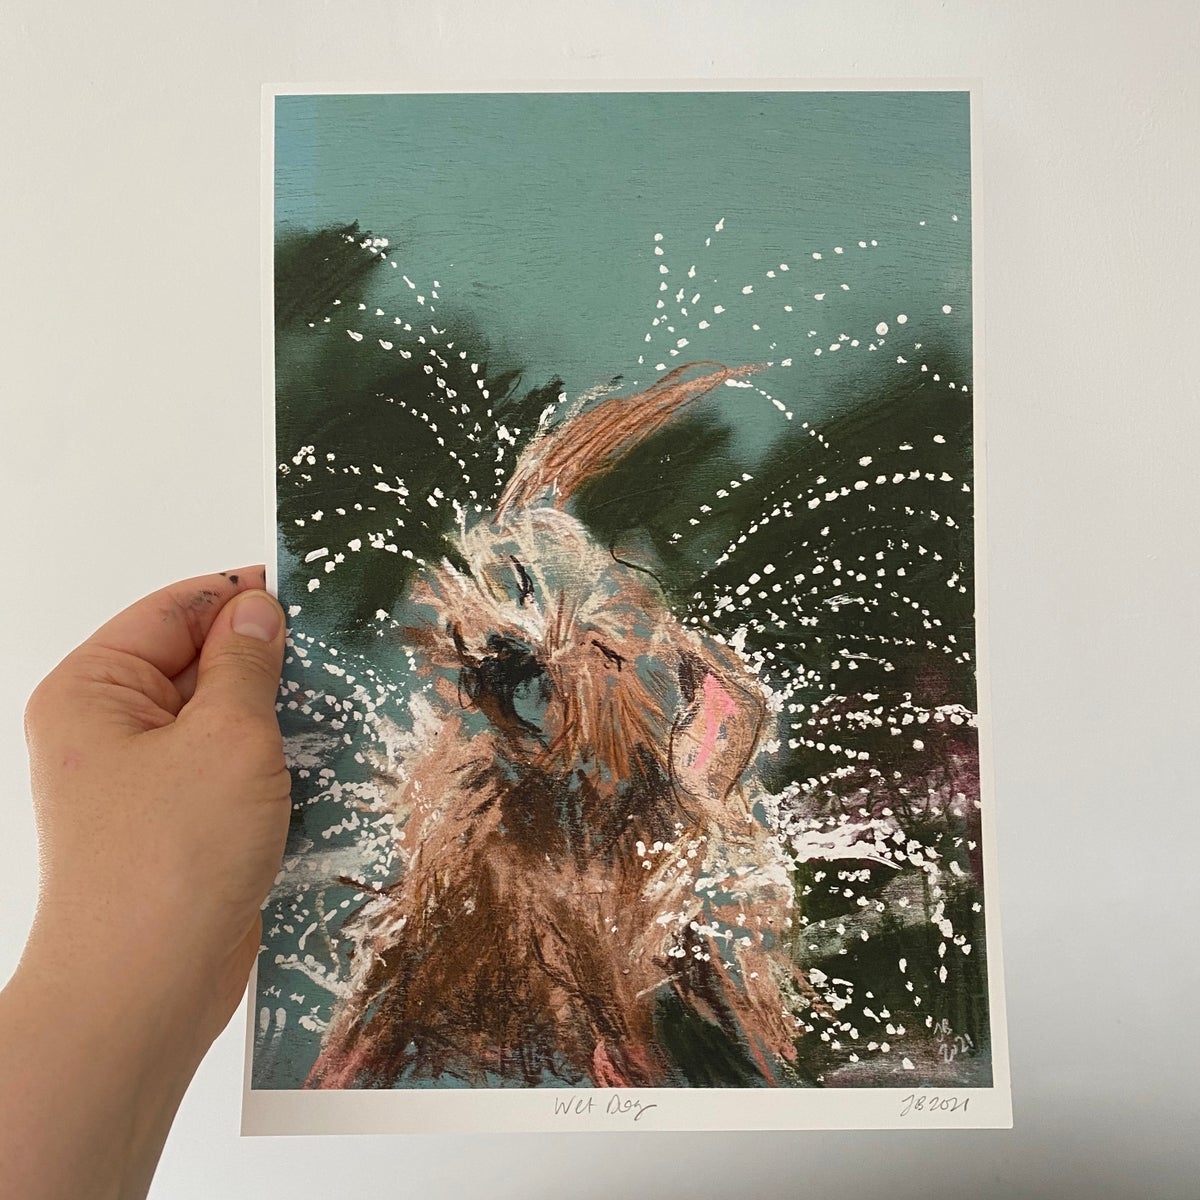 Image of 'Wet Dog' Archive Quality Print